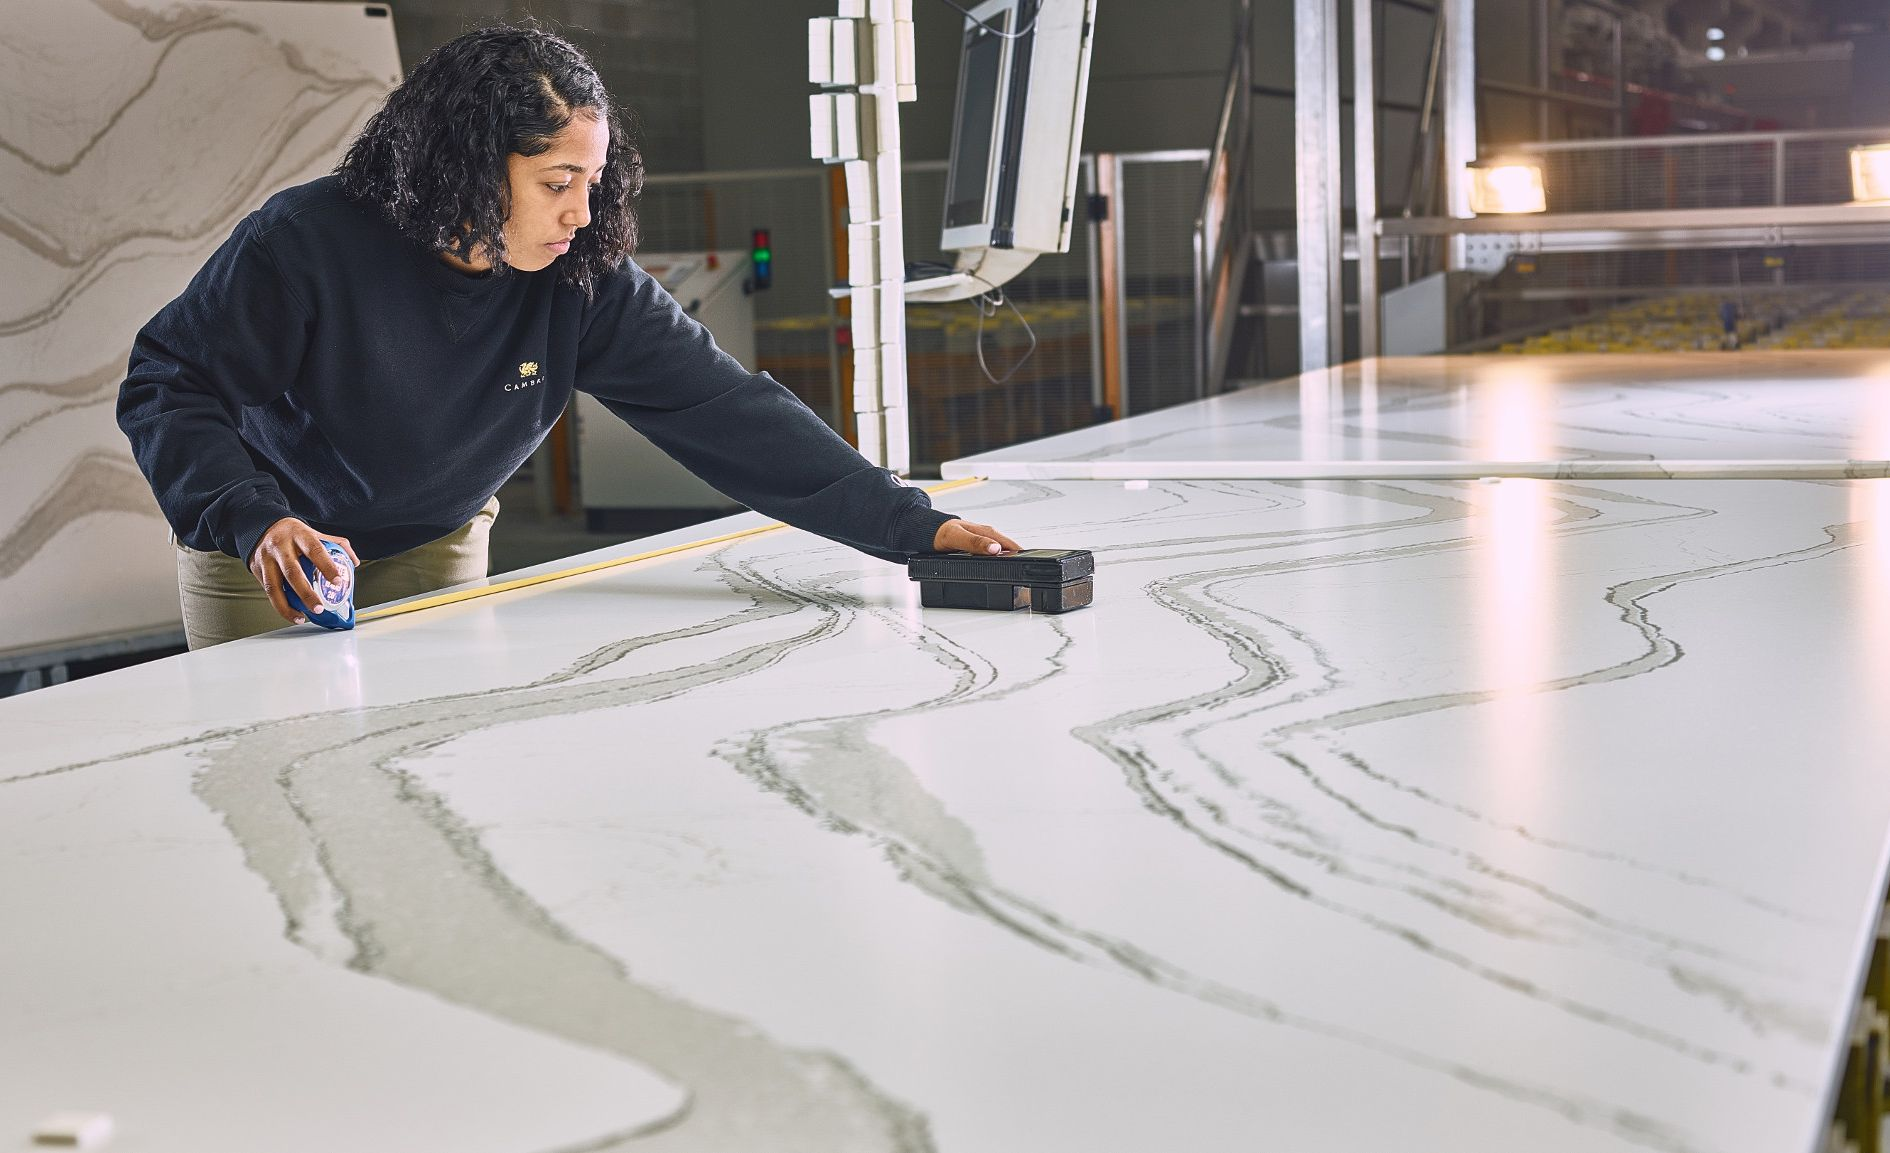 A Cambria employee uses a tool to measure gloss levels on a Cambria slab.